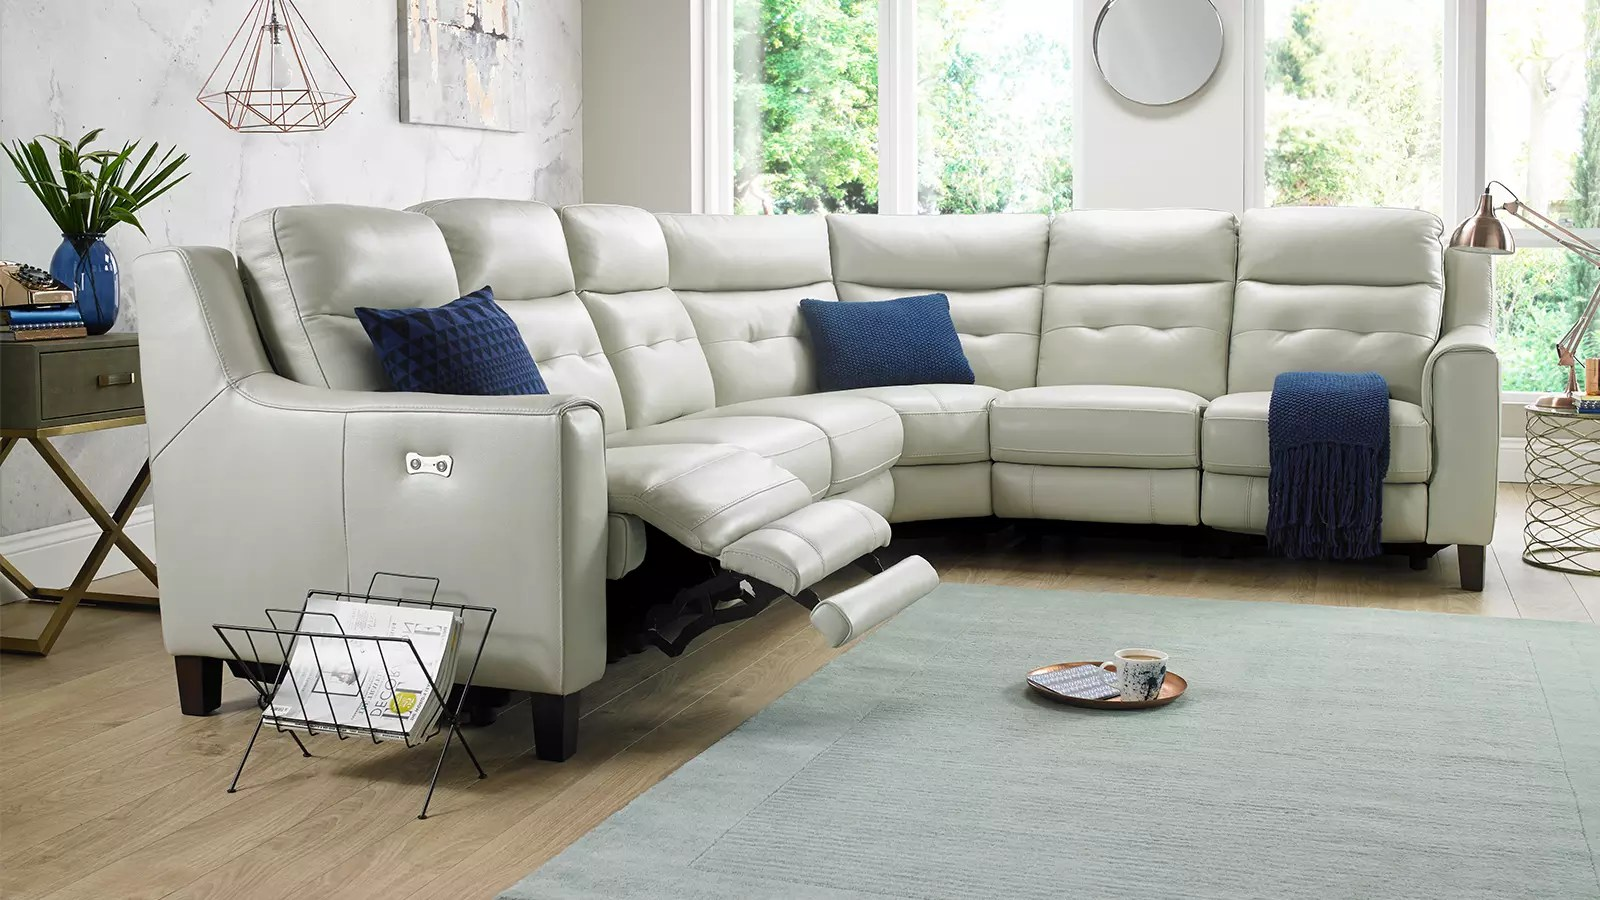 Recliners Sofology